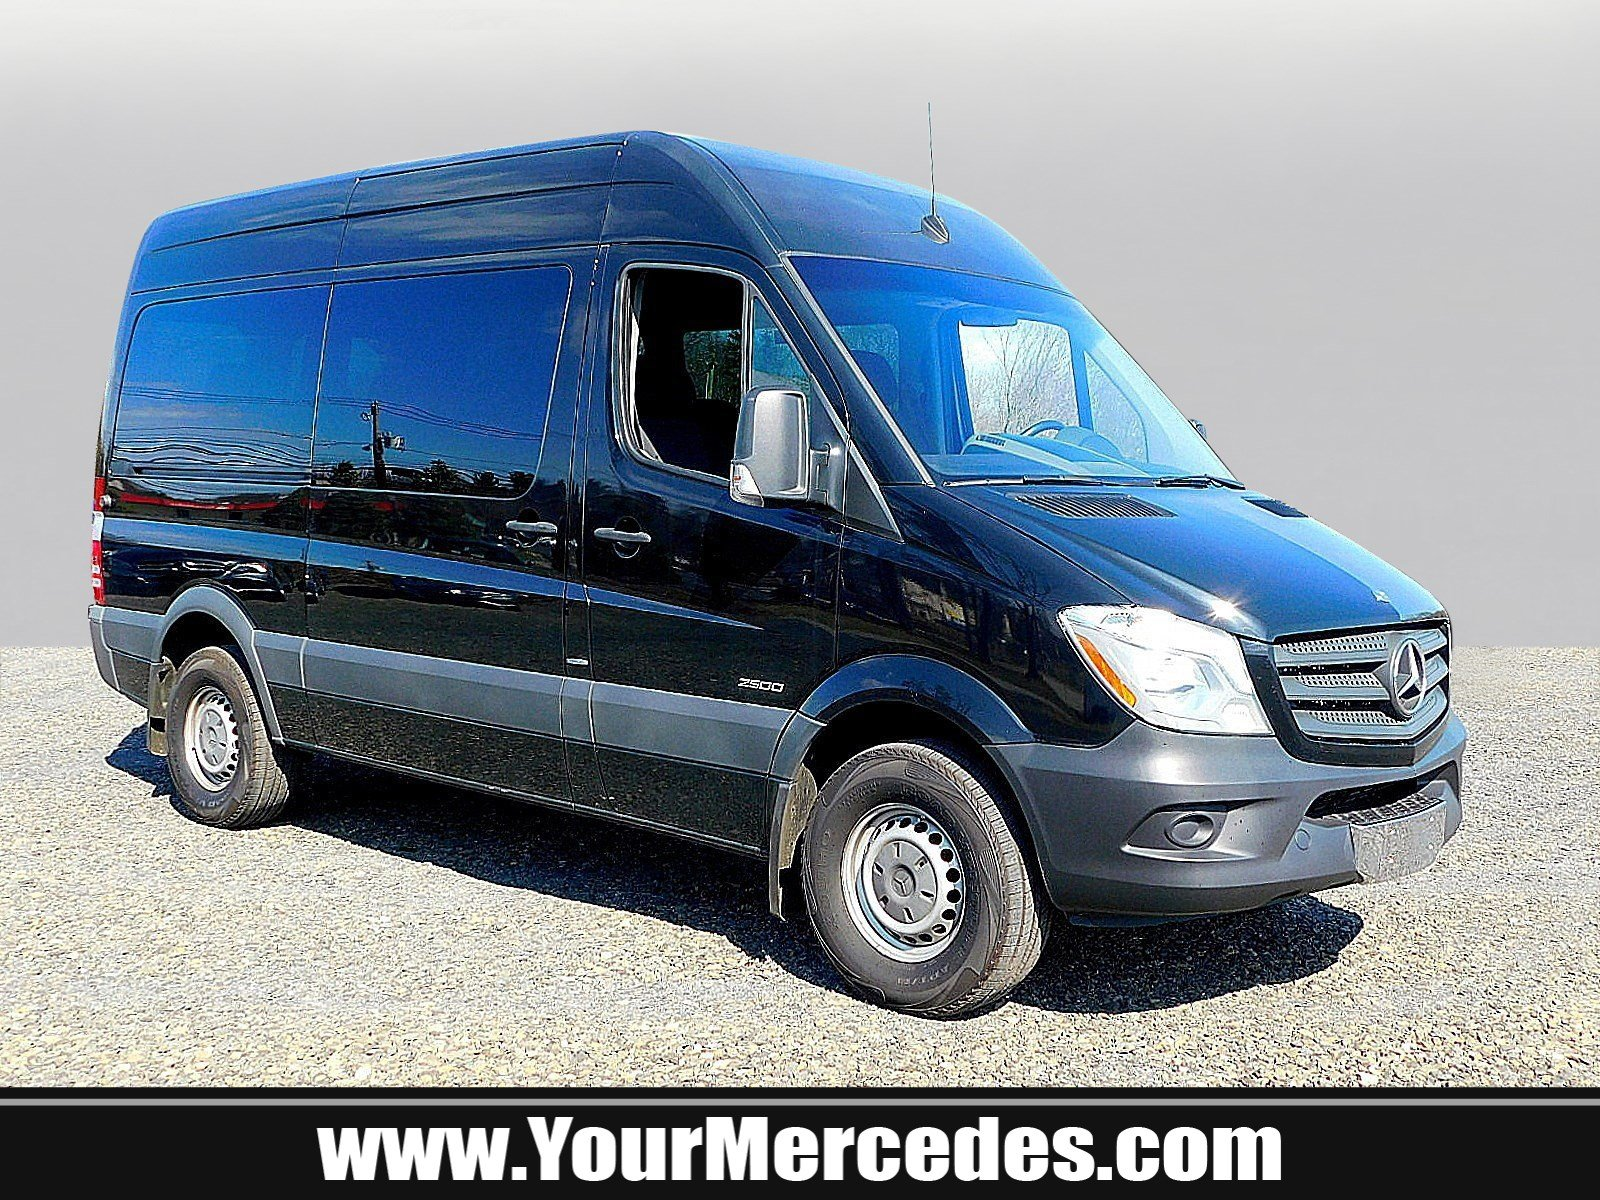 awesomeamazinggreat miles turbo benz diesel mercedes product sprinter amazing